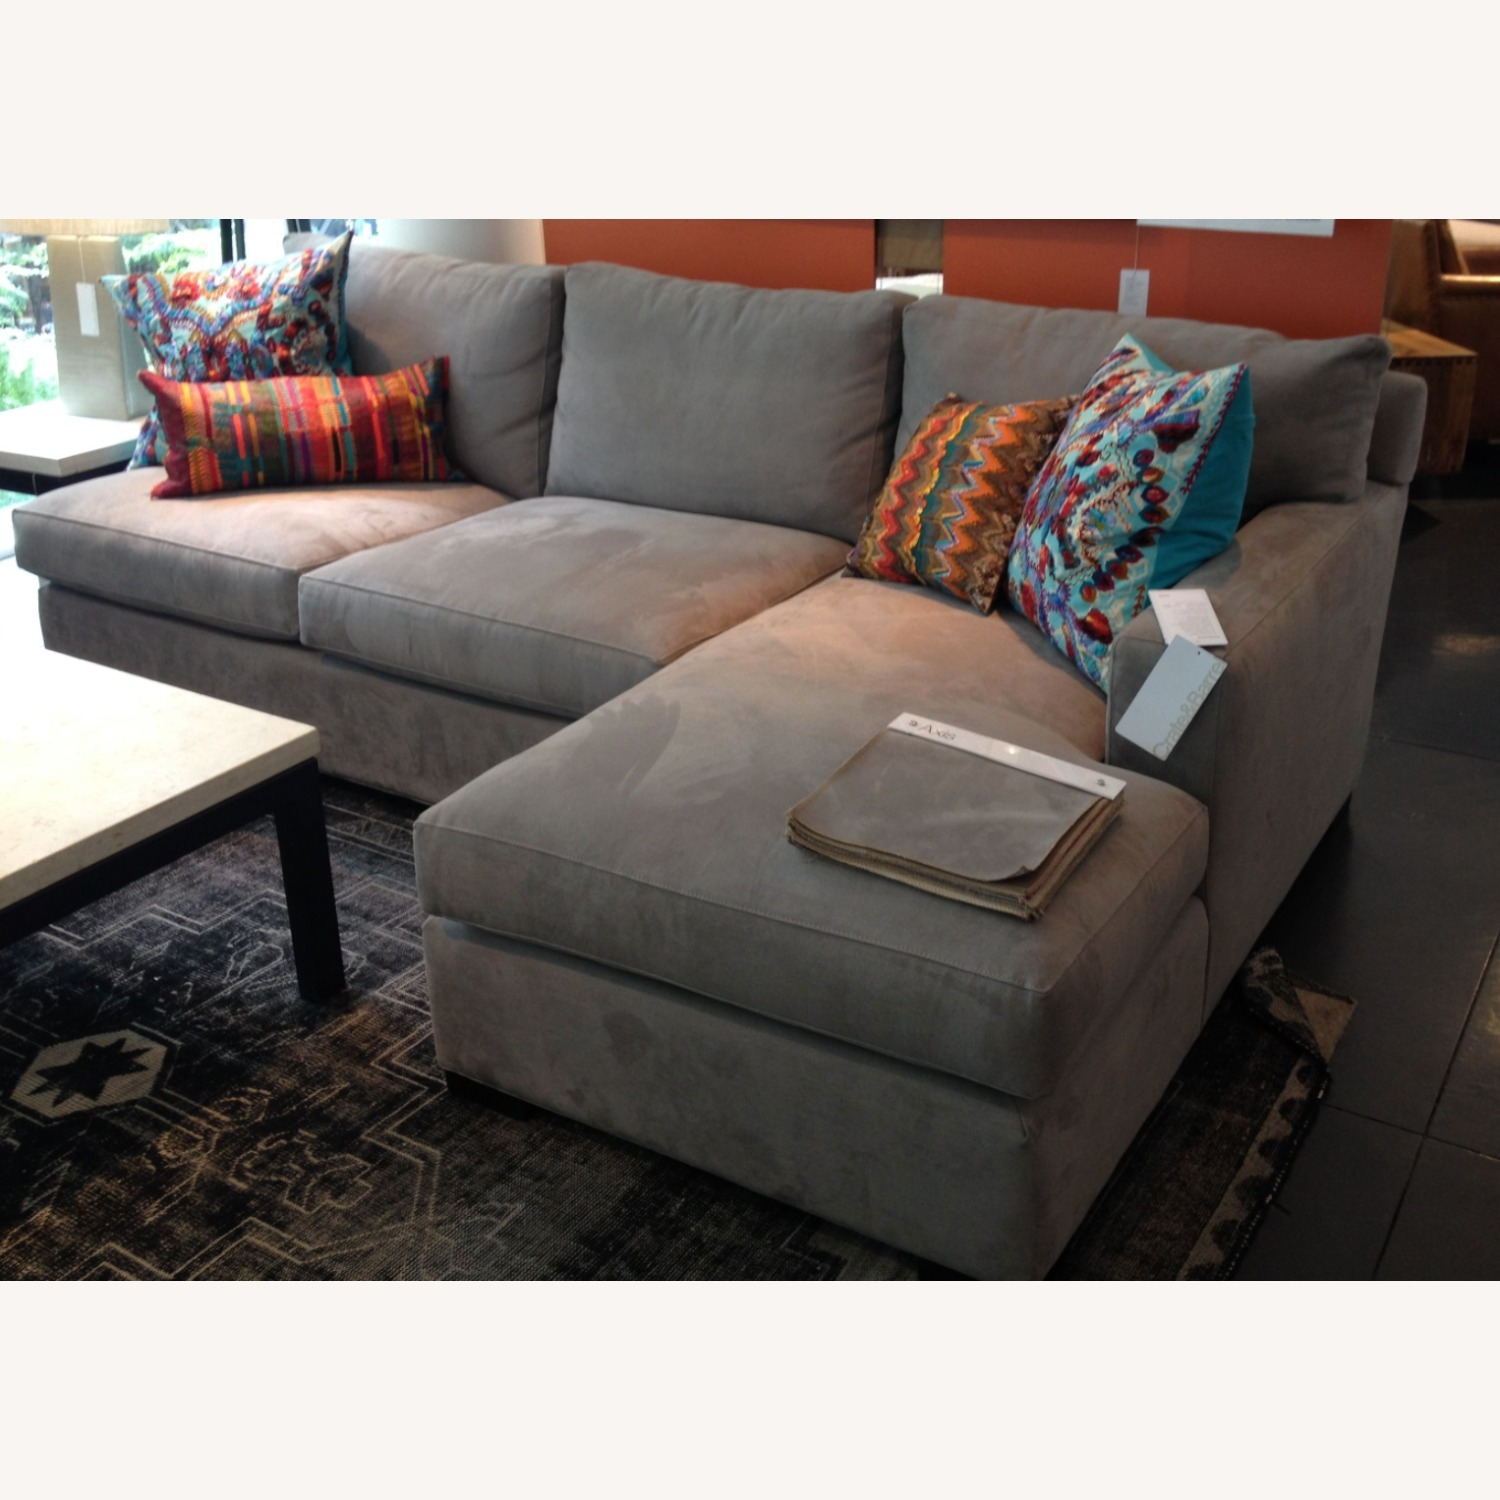 Crate & Barrel Couch - image-3